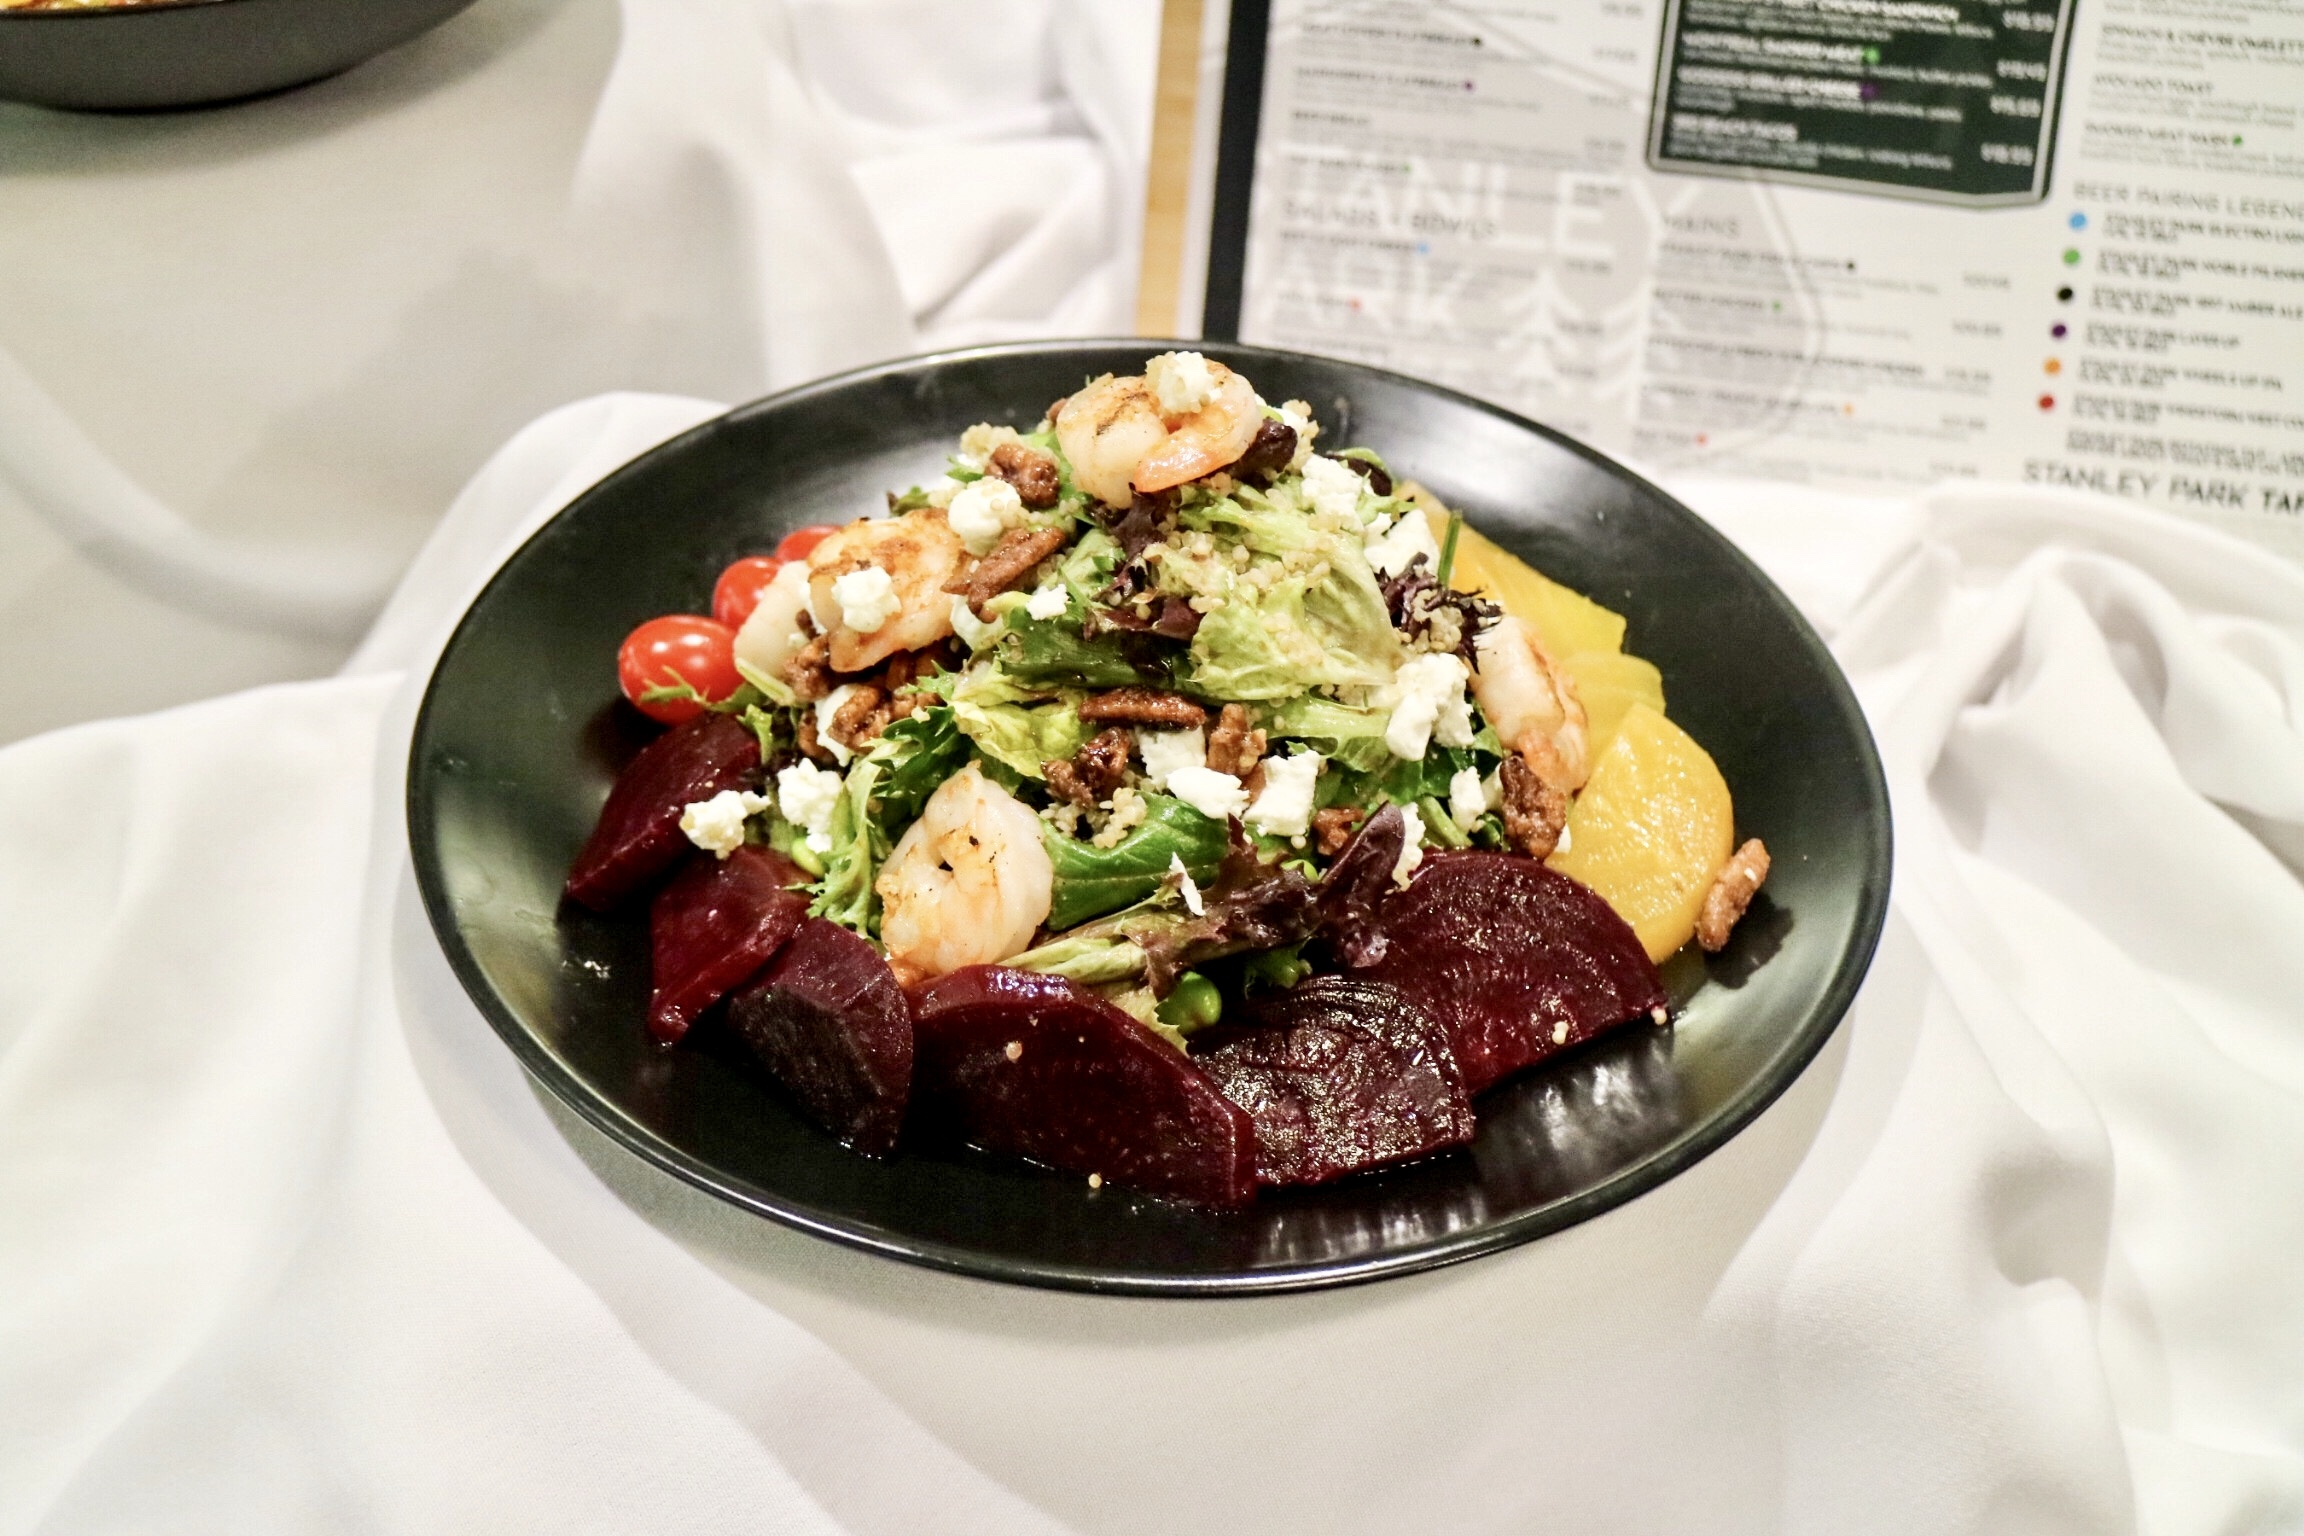 Beet & Goat Cheese Bowl